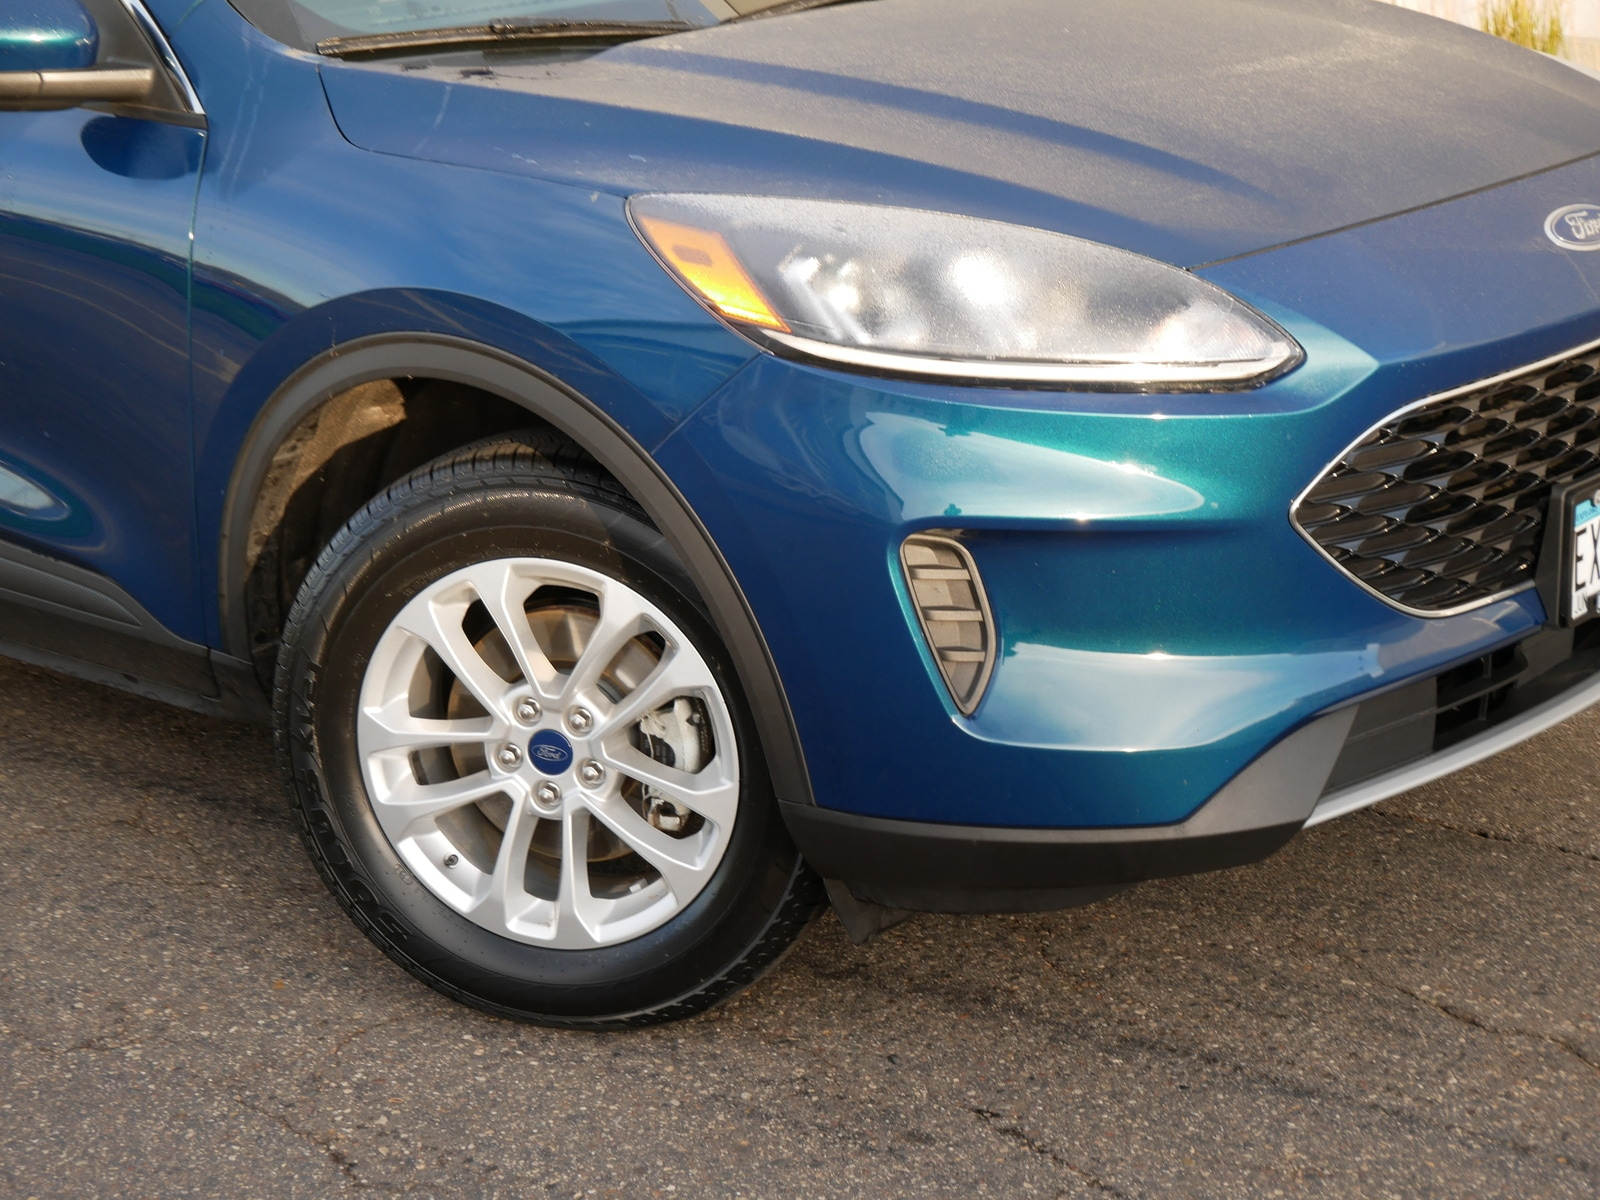 Used 2020 Ford Escape SE with VIN 1FMCU9G65LUB78883 for sale in Saint Paul, Minnesota